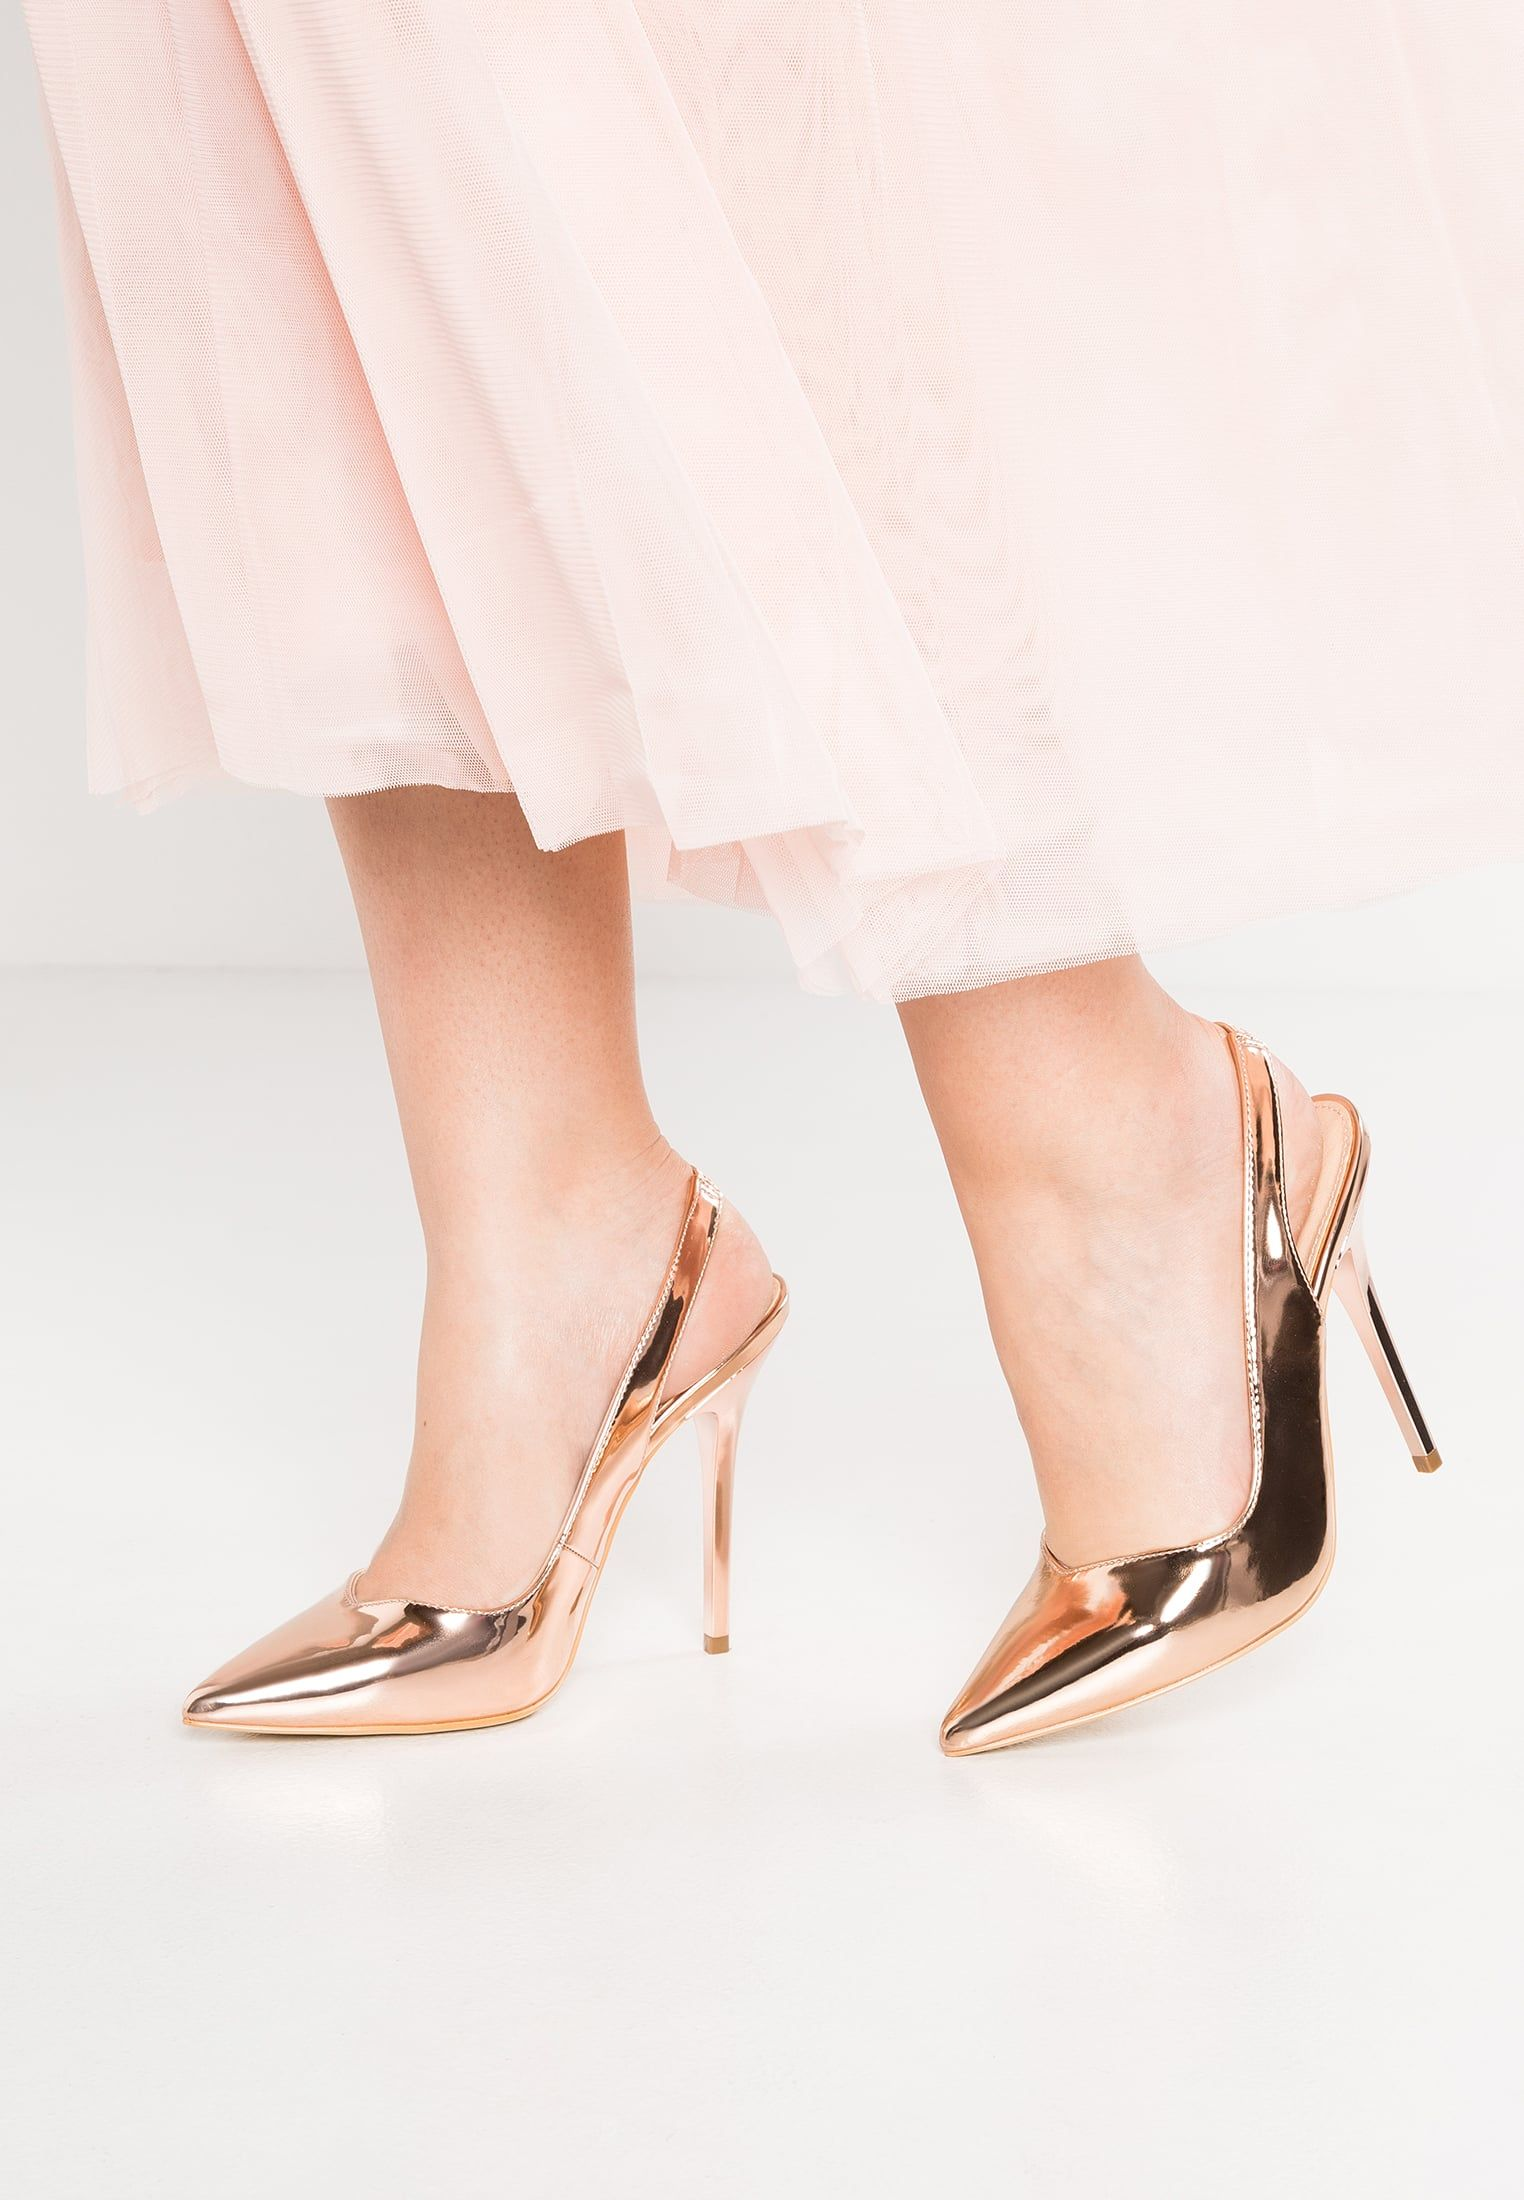 factory price 8830d 45a0c Office HIGHLIFE - High Heel Pumps - rose gold mirror für € 74,95 (09.09.17)  versandkostenfrei bei Zalando.at bestellen.